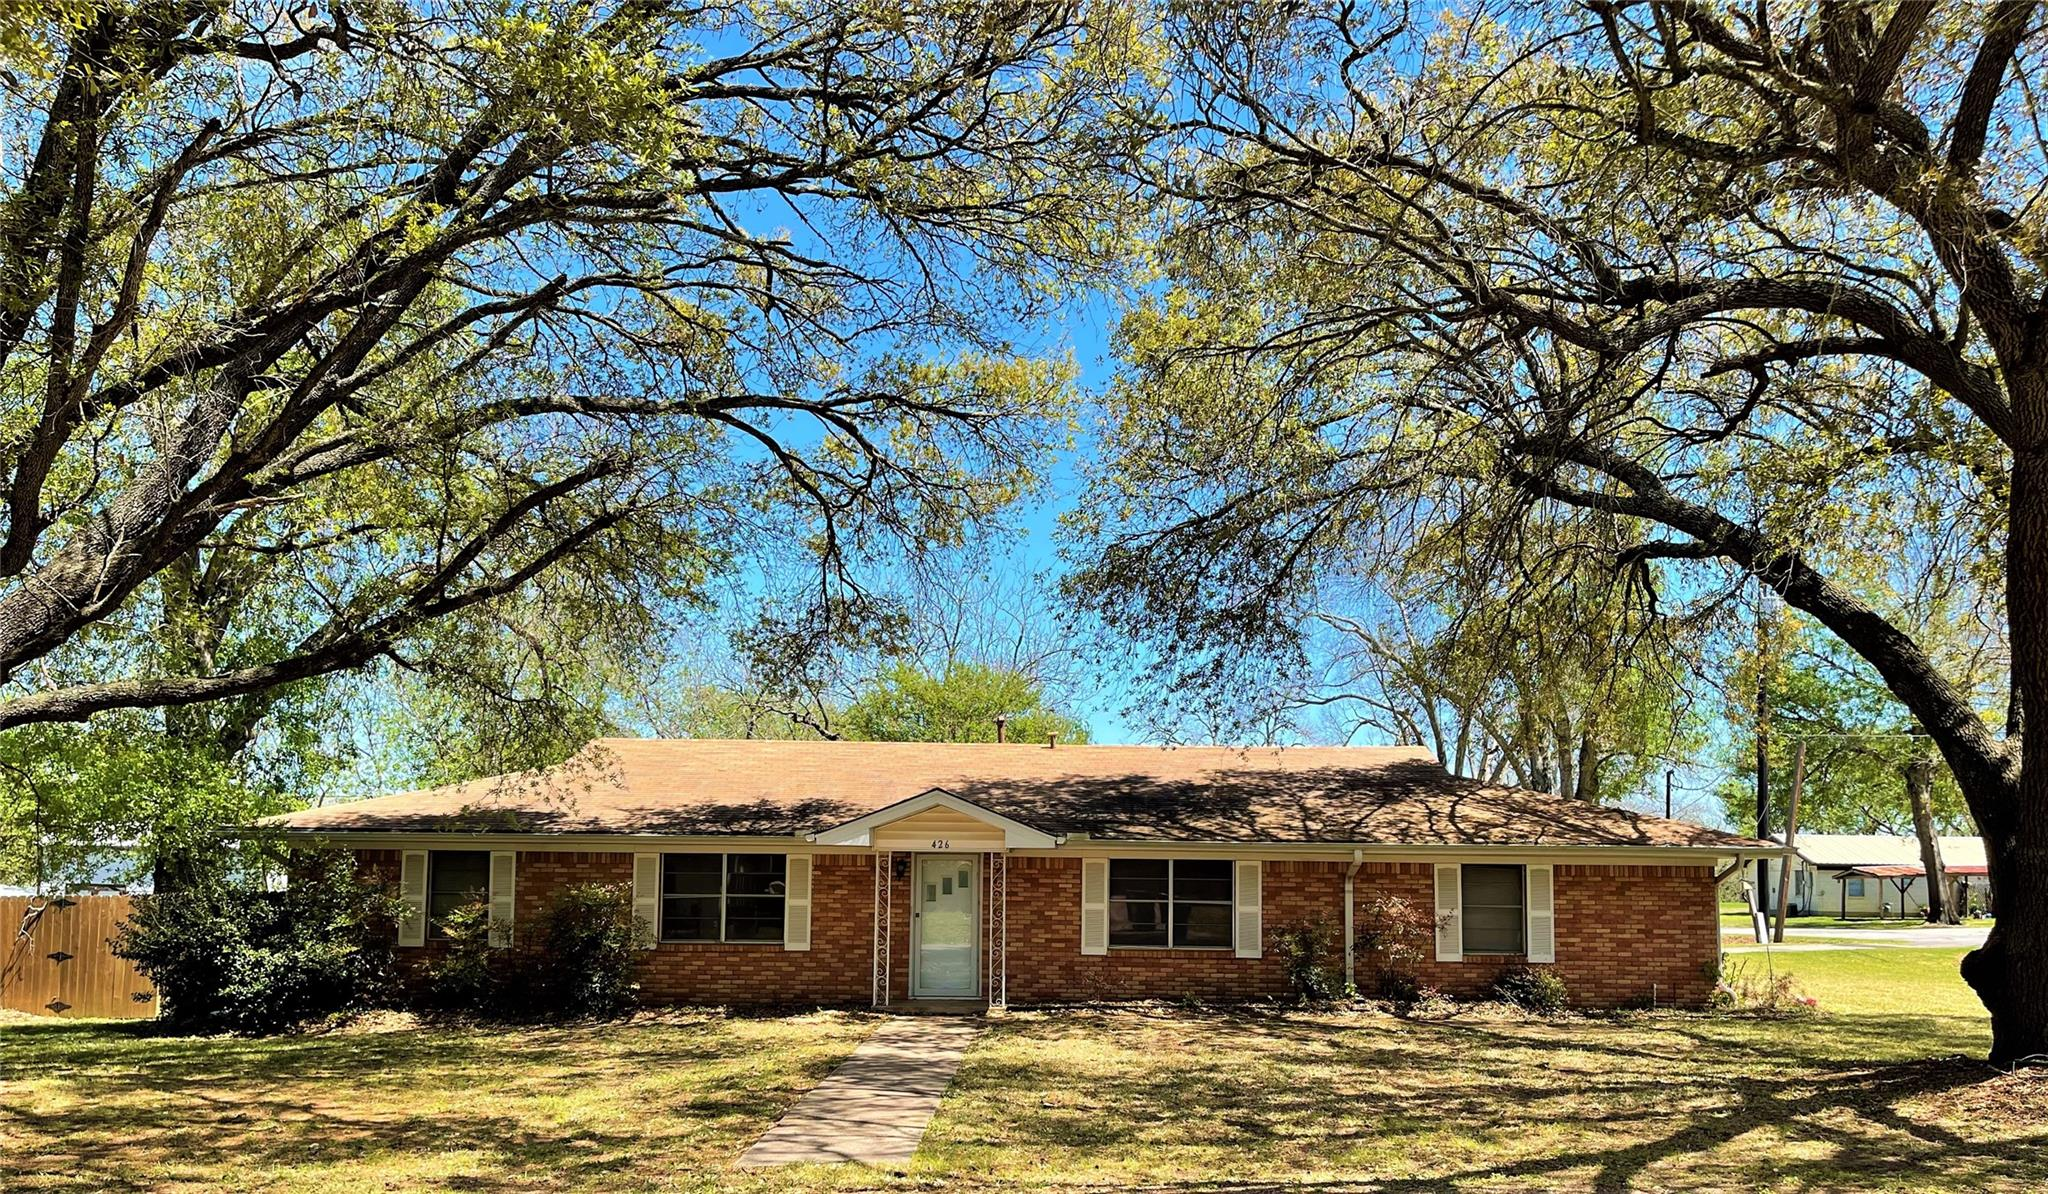 426 N Mount Street Property Photo - Fairfield, TX real estate listing